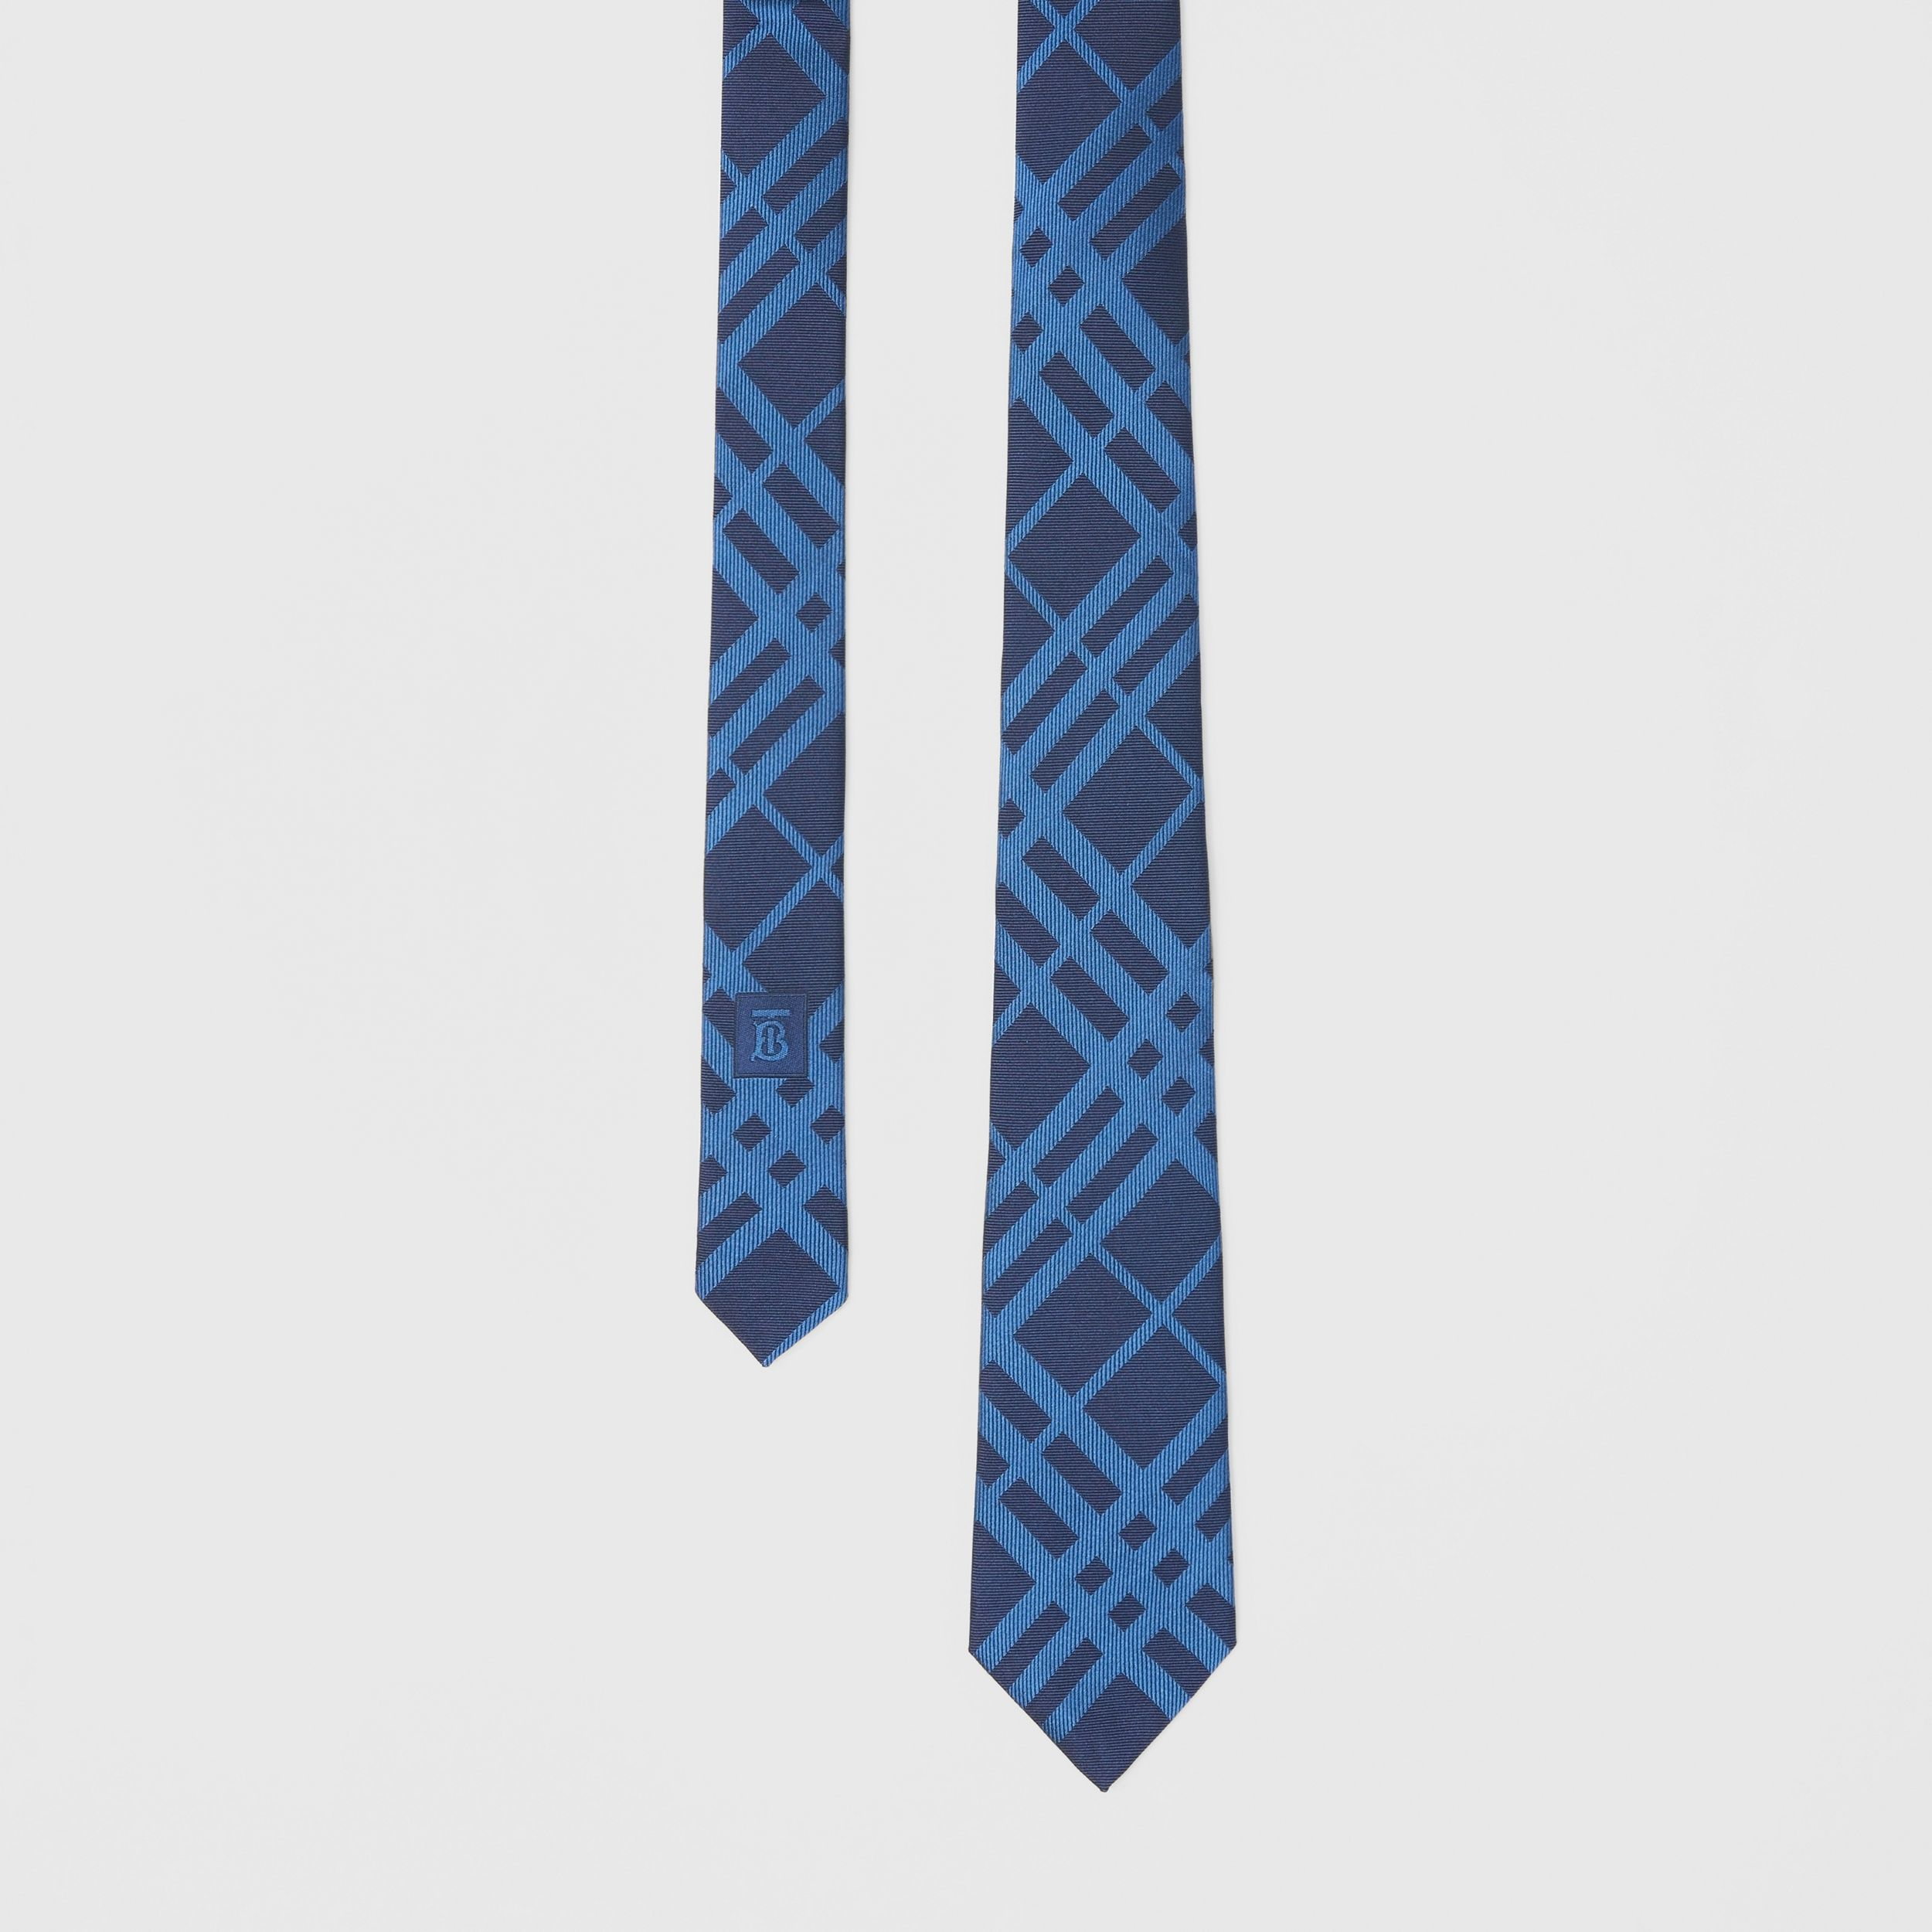 Classic Cut Check Silk Jacquard Tie in Ink Blue - Men | Burberry Hong Kong S.A.R. - 1